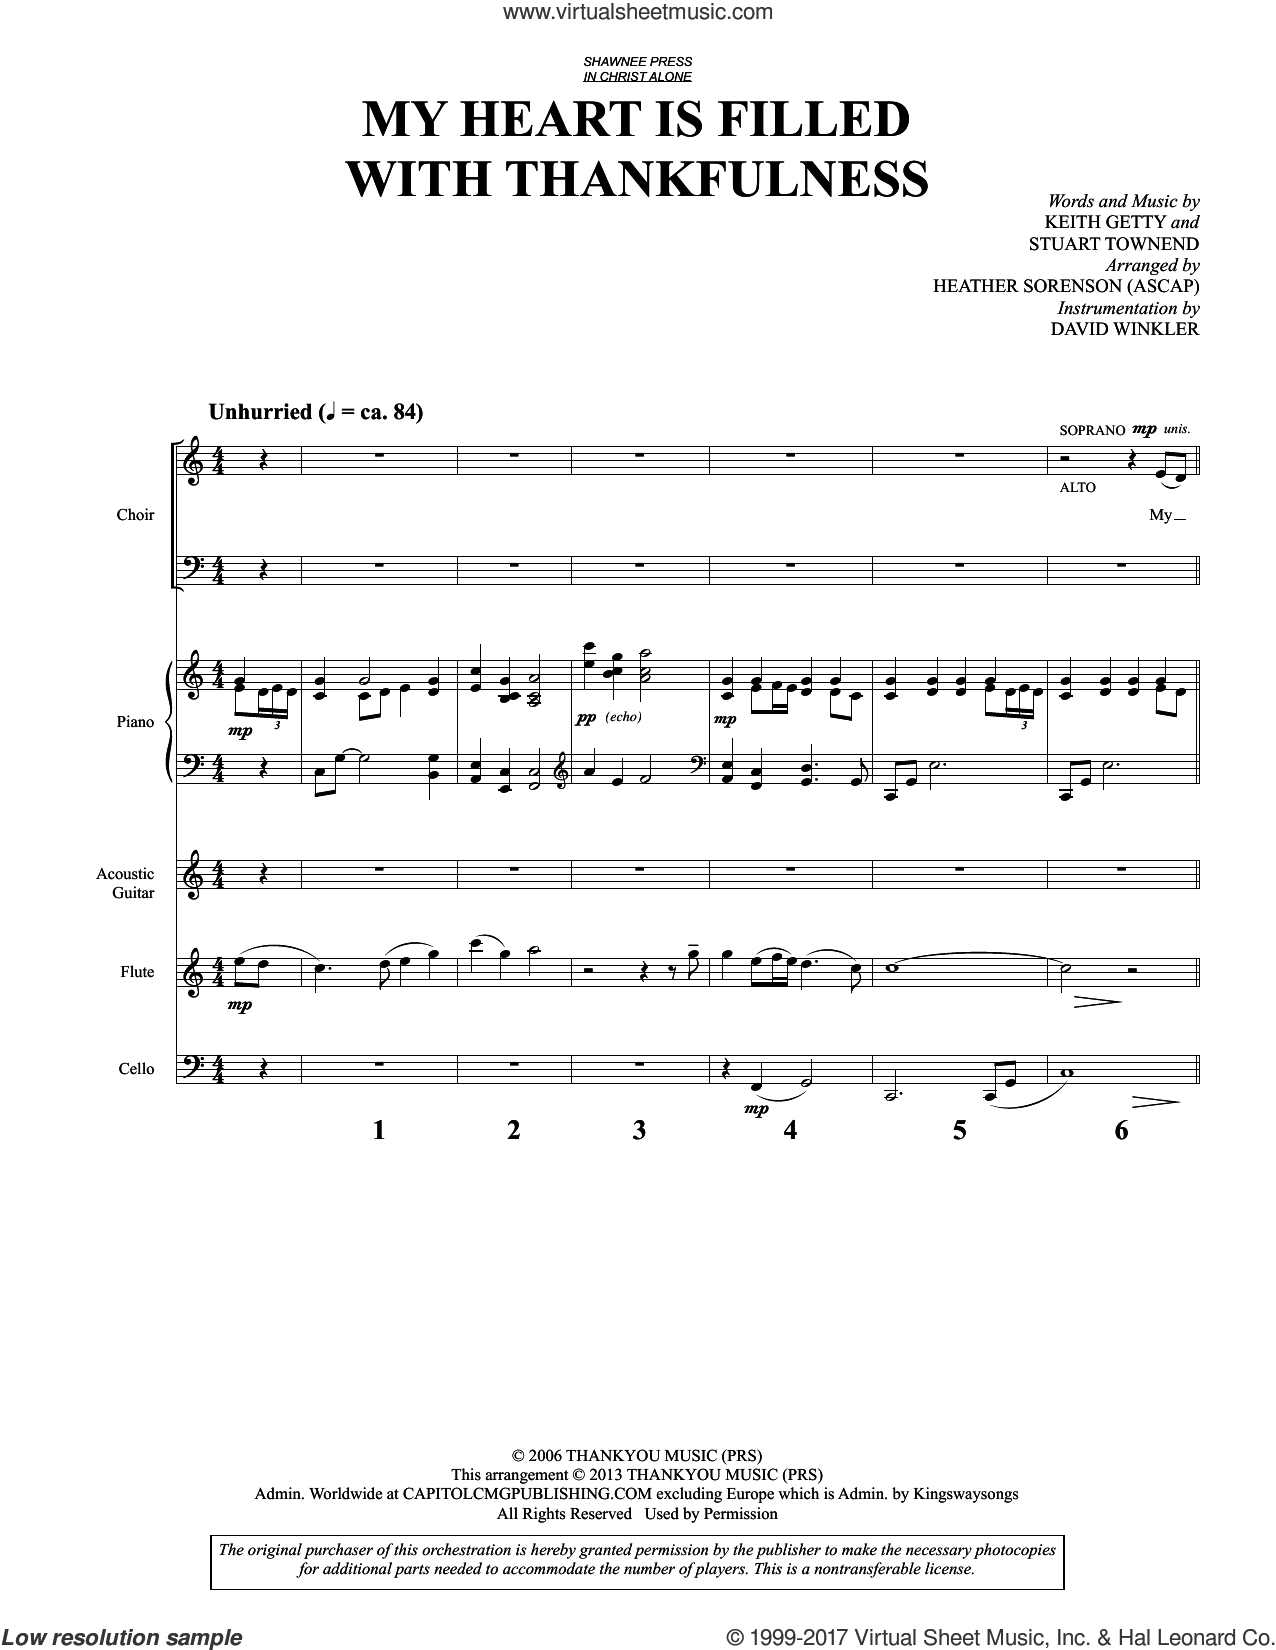 My Heart Is Filled with Thankfulness (COMPLETE) sheet music for orchestra/band by Heather Sorenson, Keith & Kristyn Getty, Keith Getty and Stuart Townend, intermediate. Score Image Preview.